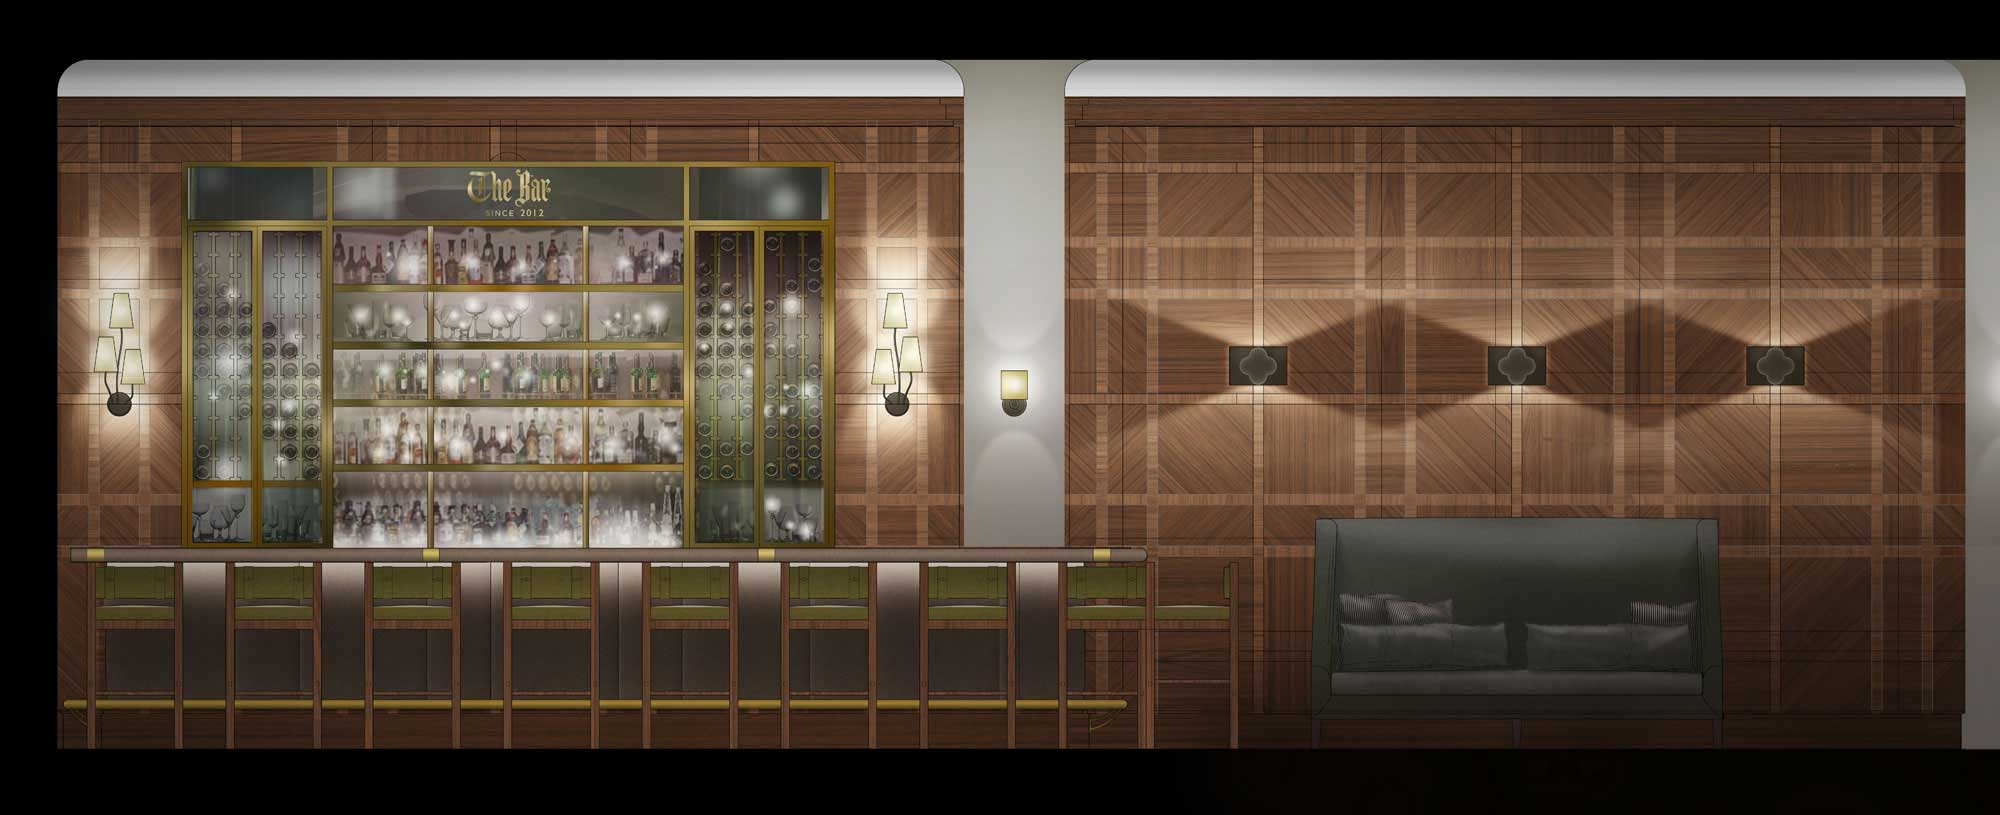 AutoCad interior Elevation painted in Photoshop architectural graphics renderings project presentation